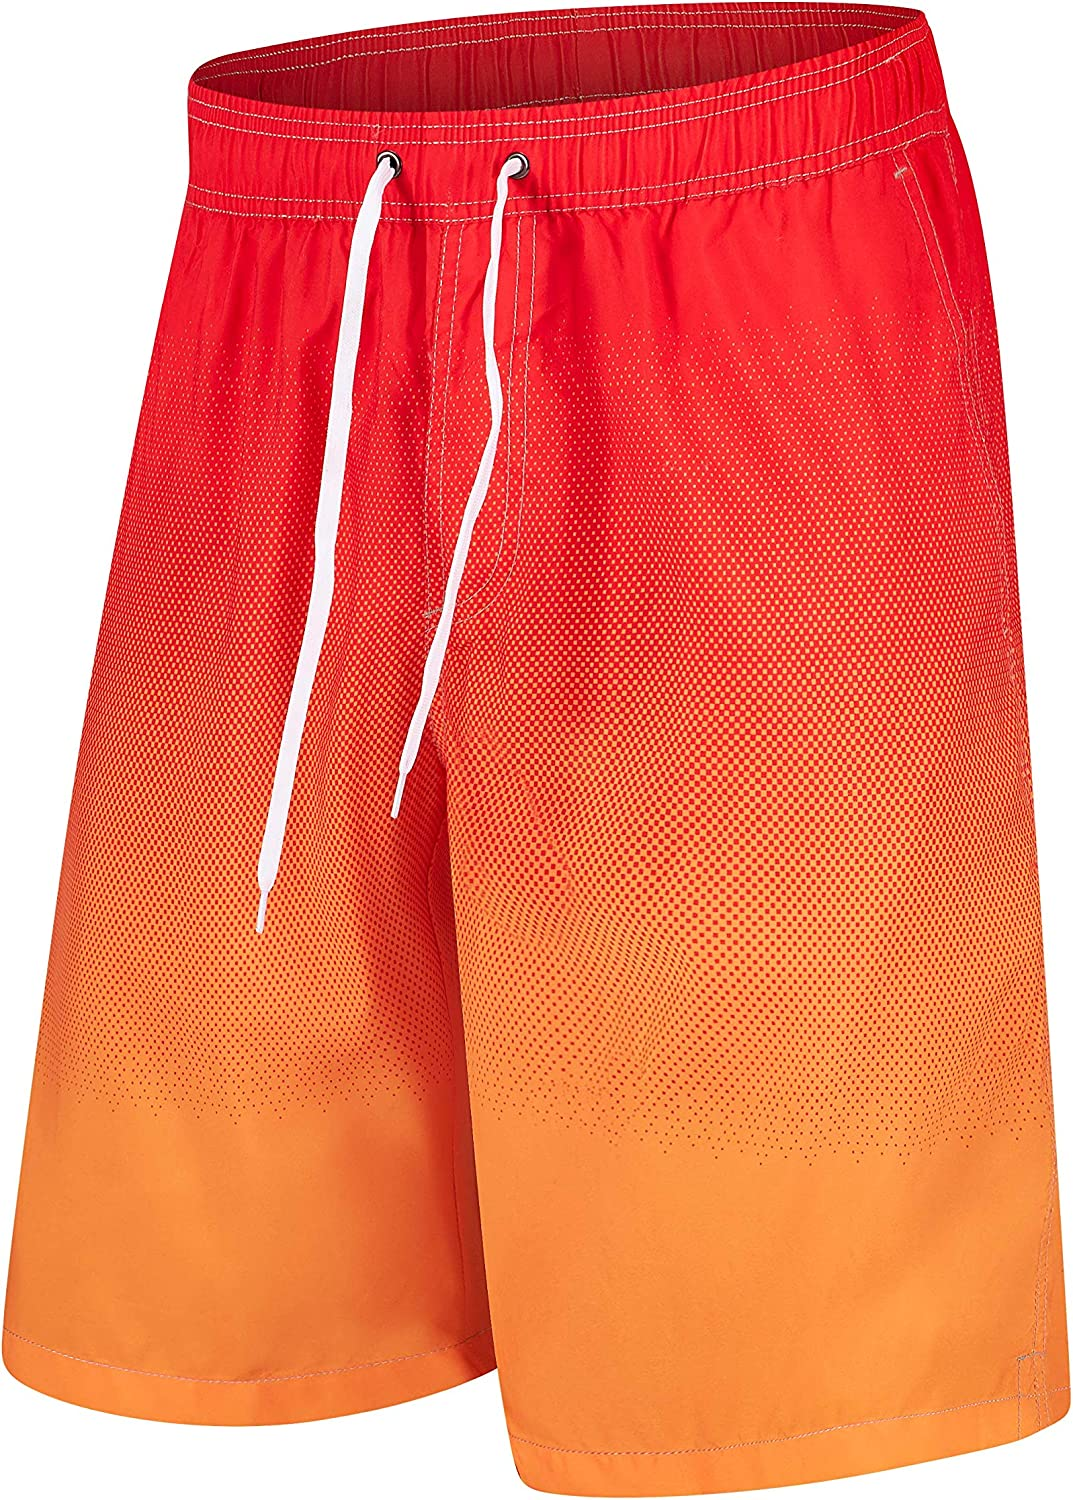 Asverd Mens Swim Trunks Quick Dry Beach Board Short with Mesh Lining and Pockets